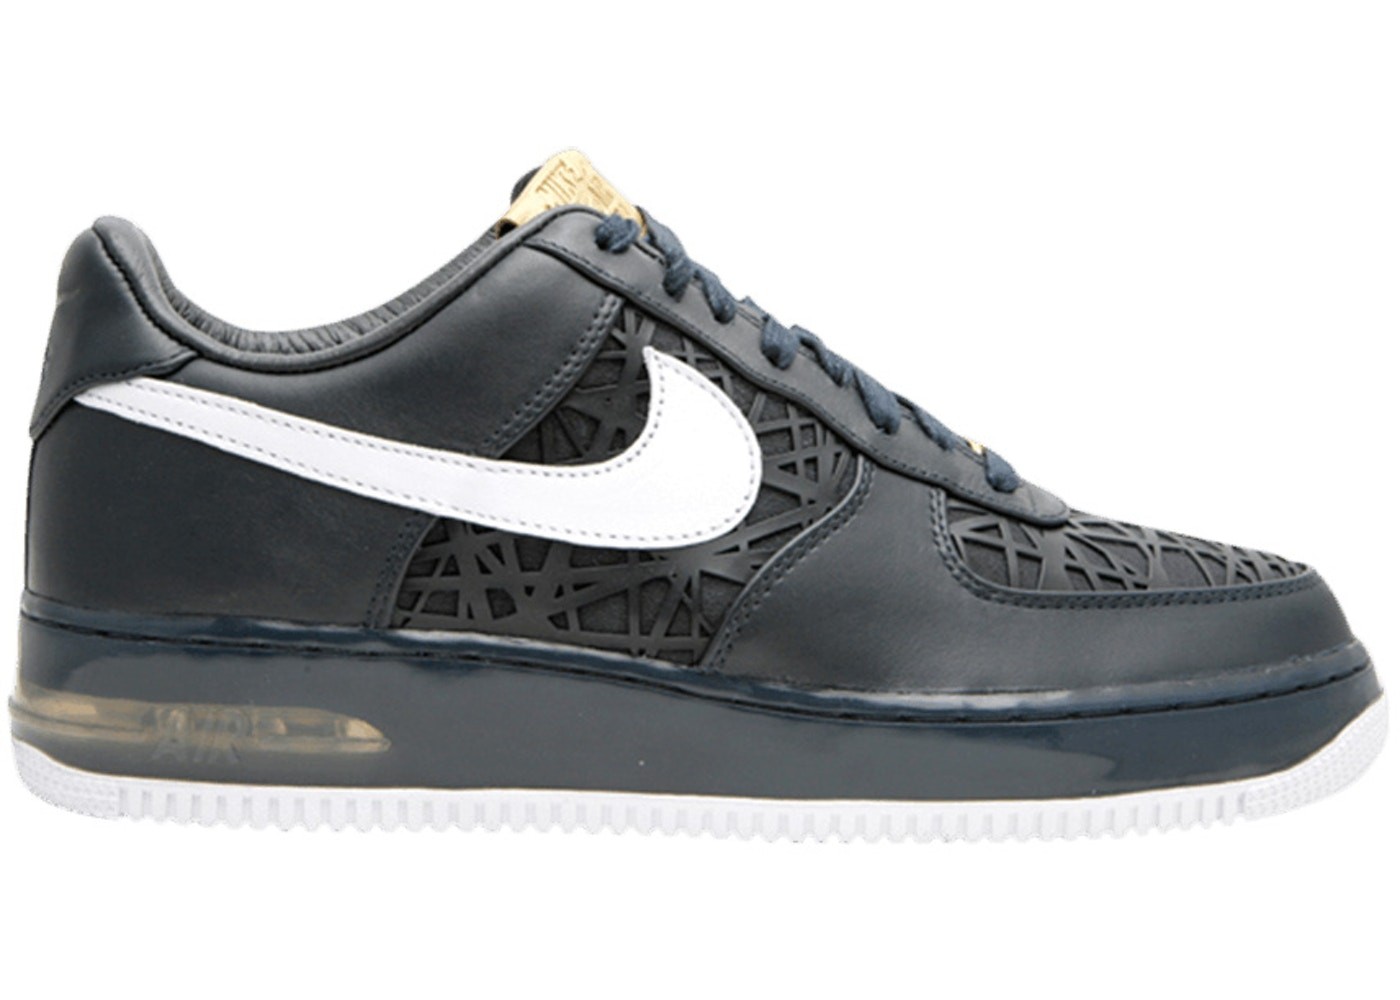 Influyente Londres Deambular  Nike Air Force One Max Supreme Bird's Nest - 318772-411